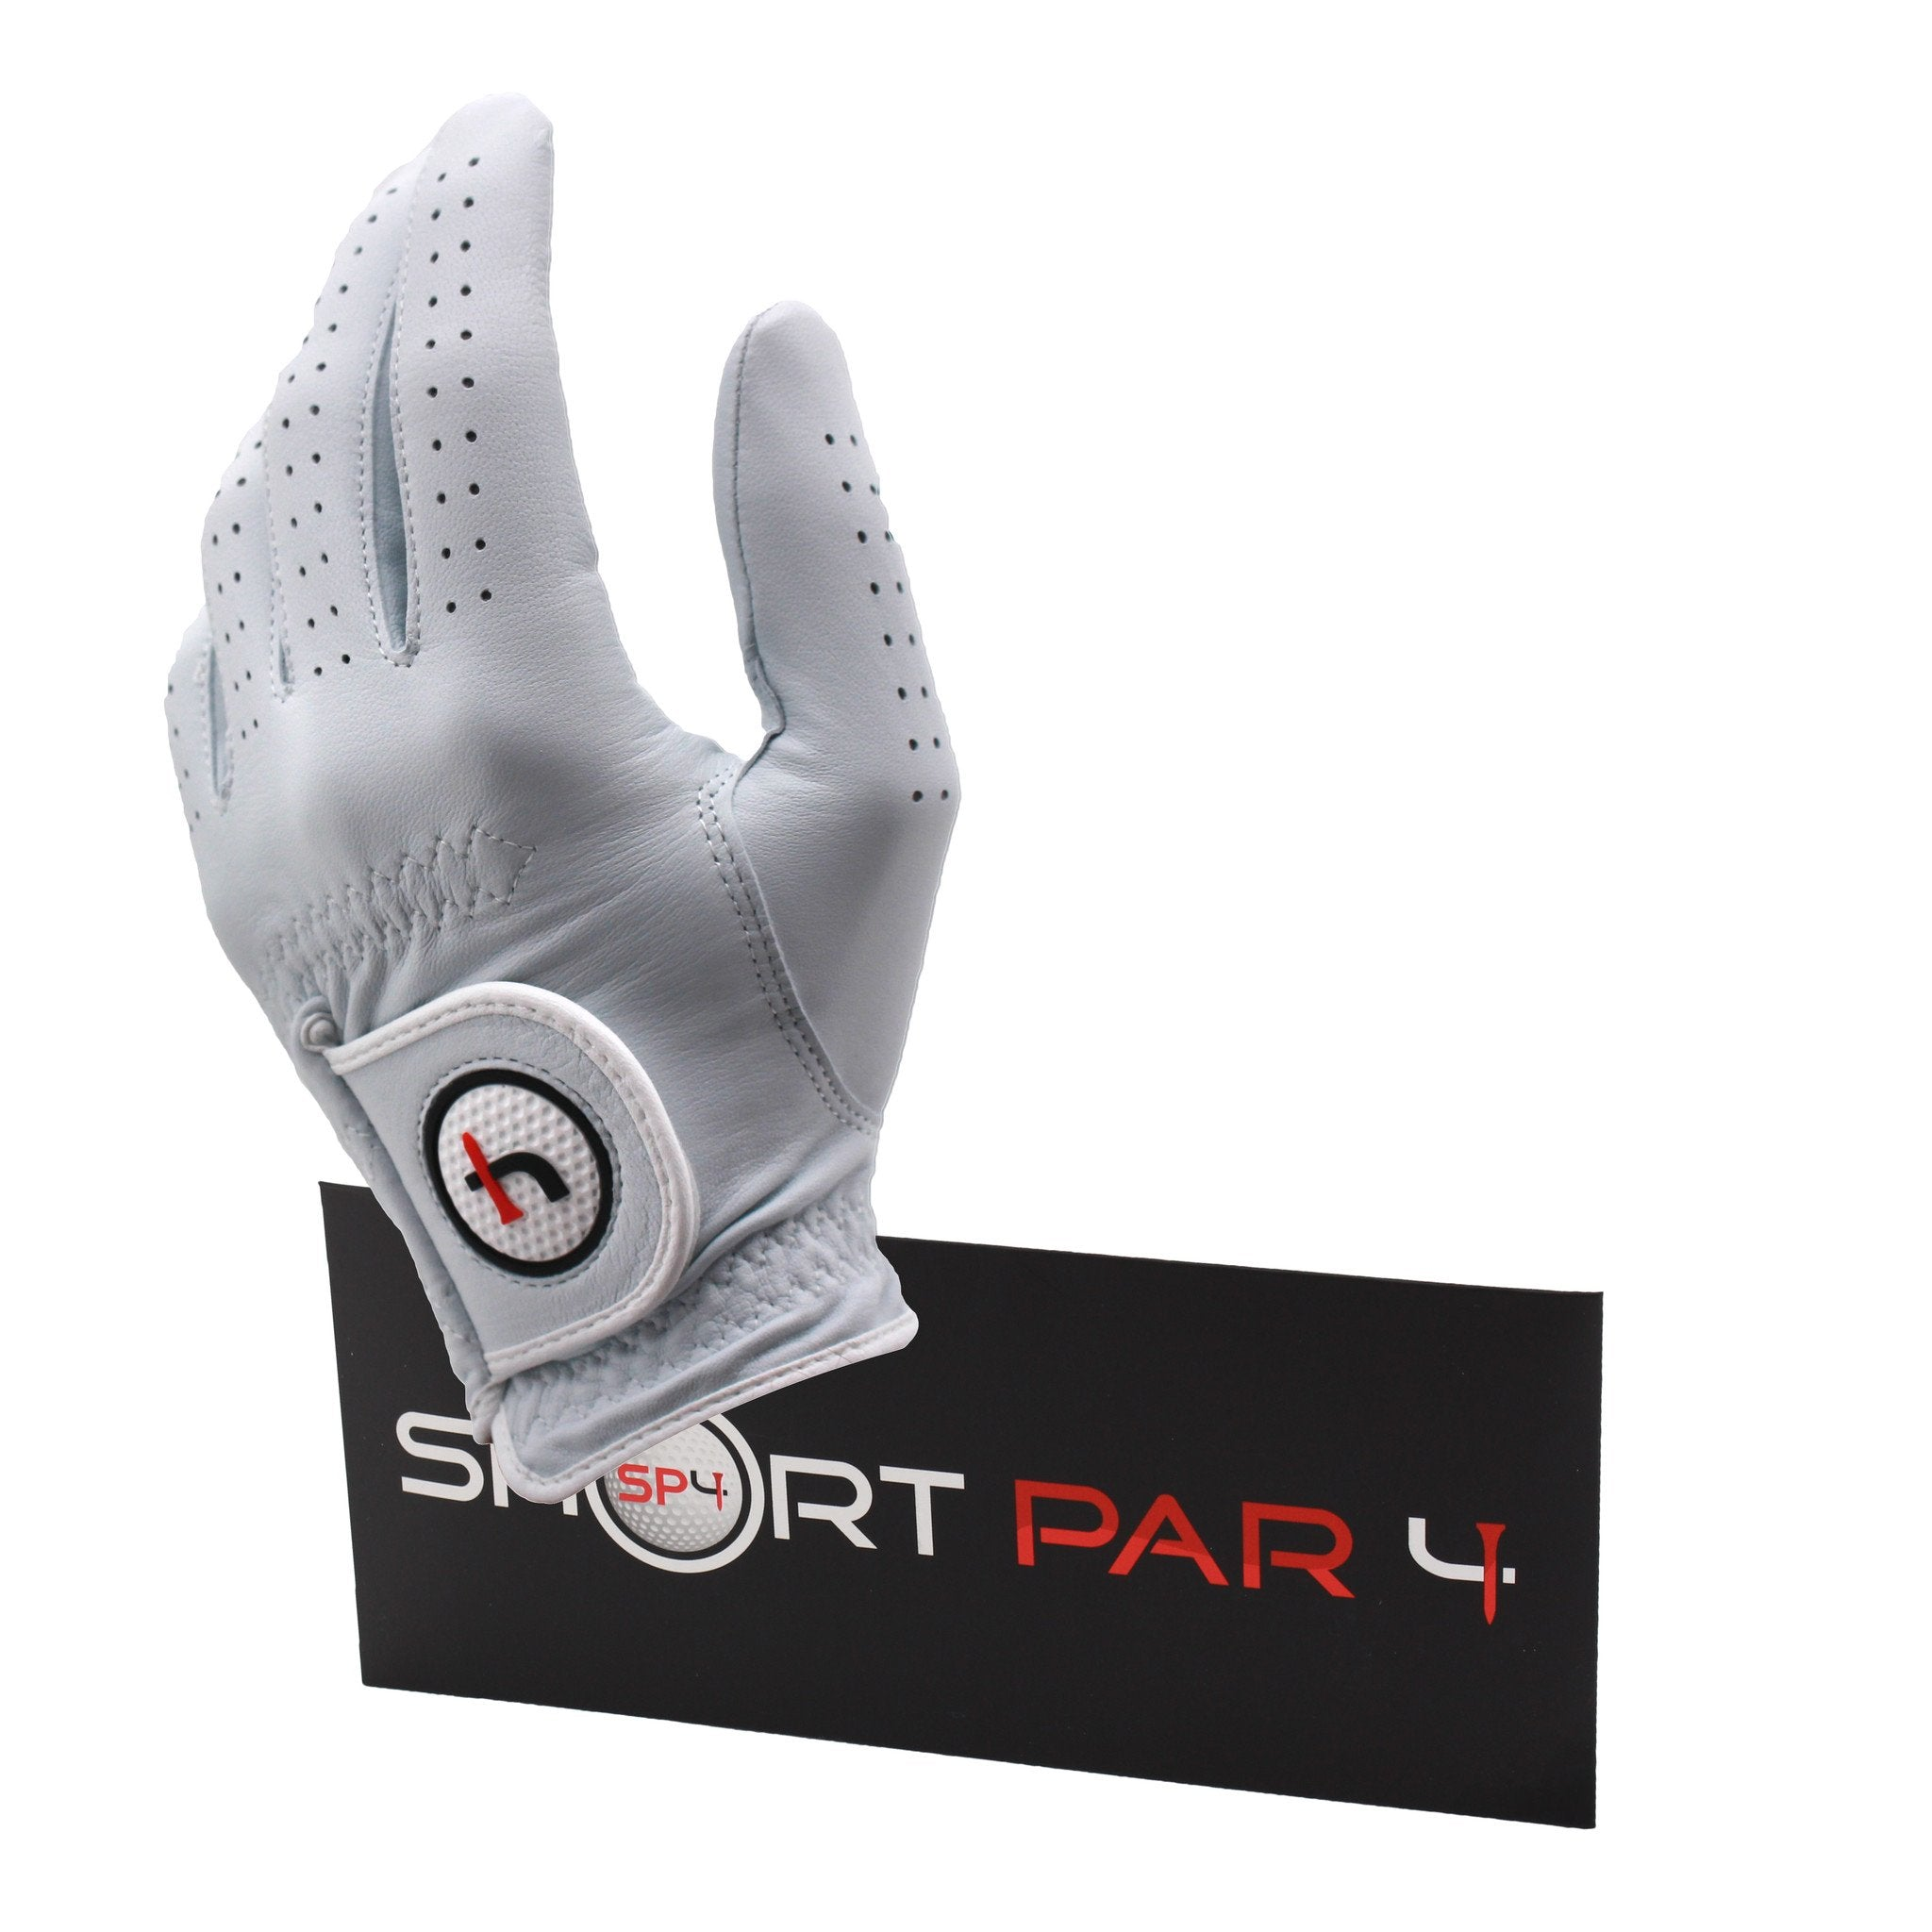 SP4 Women's Glove